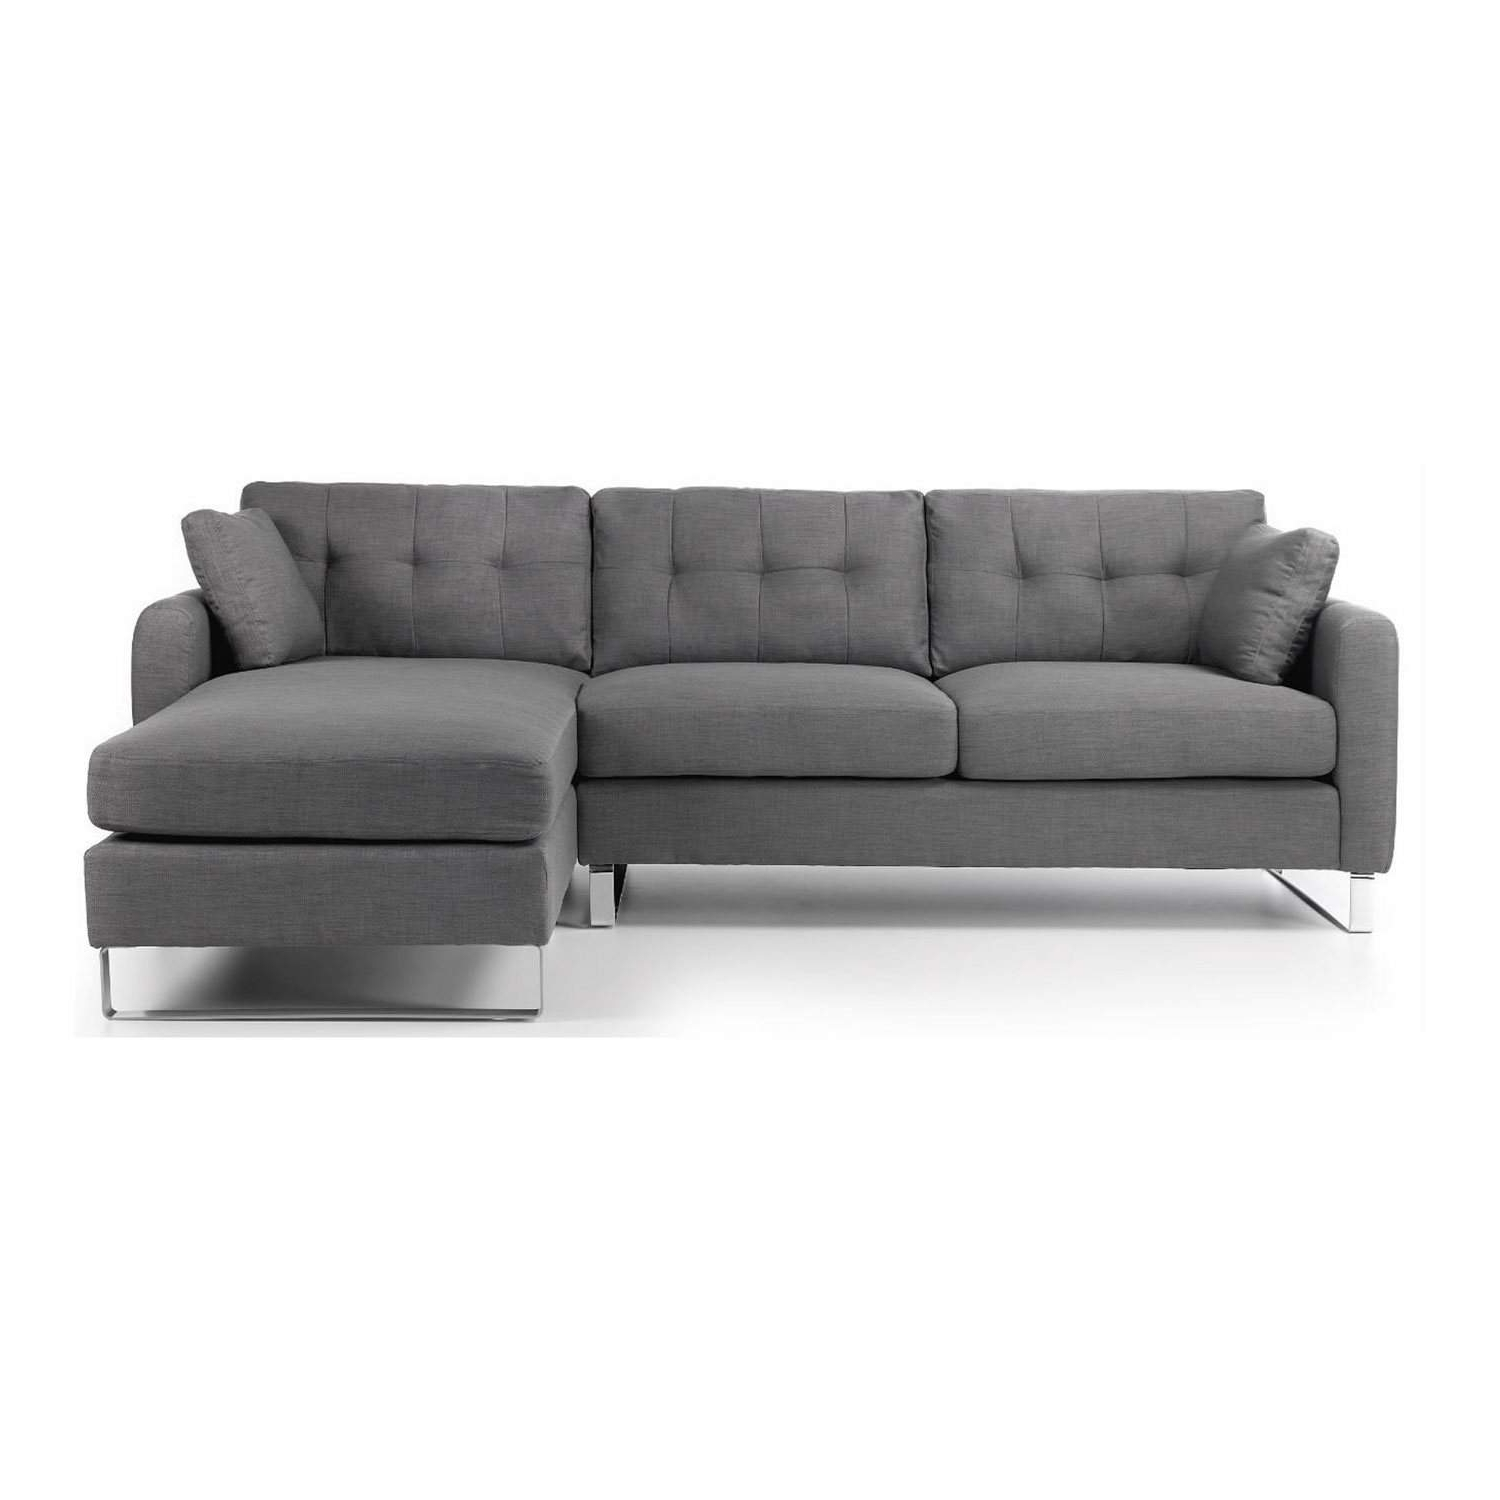 Well Known Cheap Chaise Sofas Regarding 37 Most Superb Grey Chaise Sofa Or Ekornes Stressless Plus Rustic (View 13 of 15)